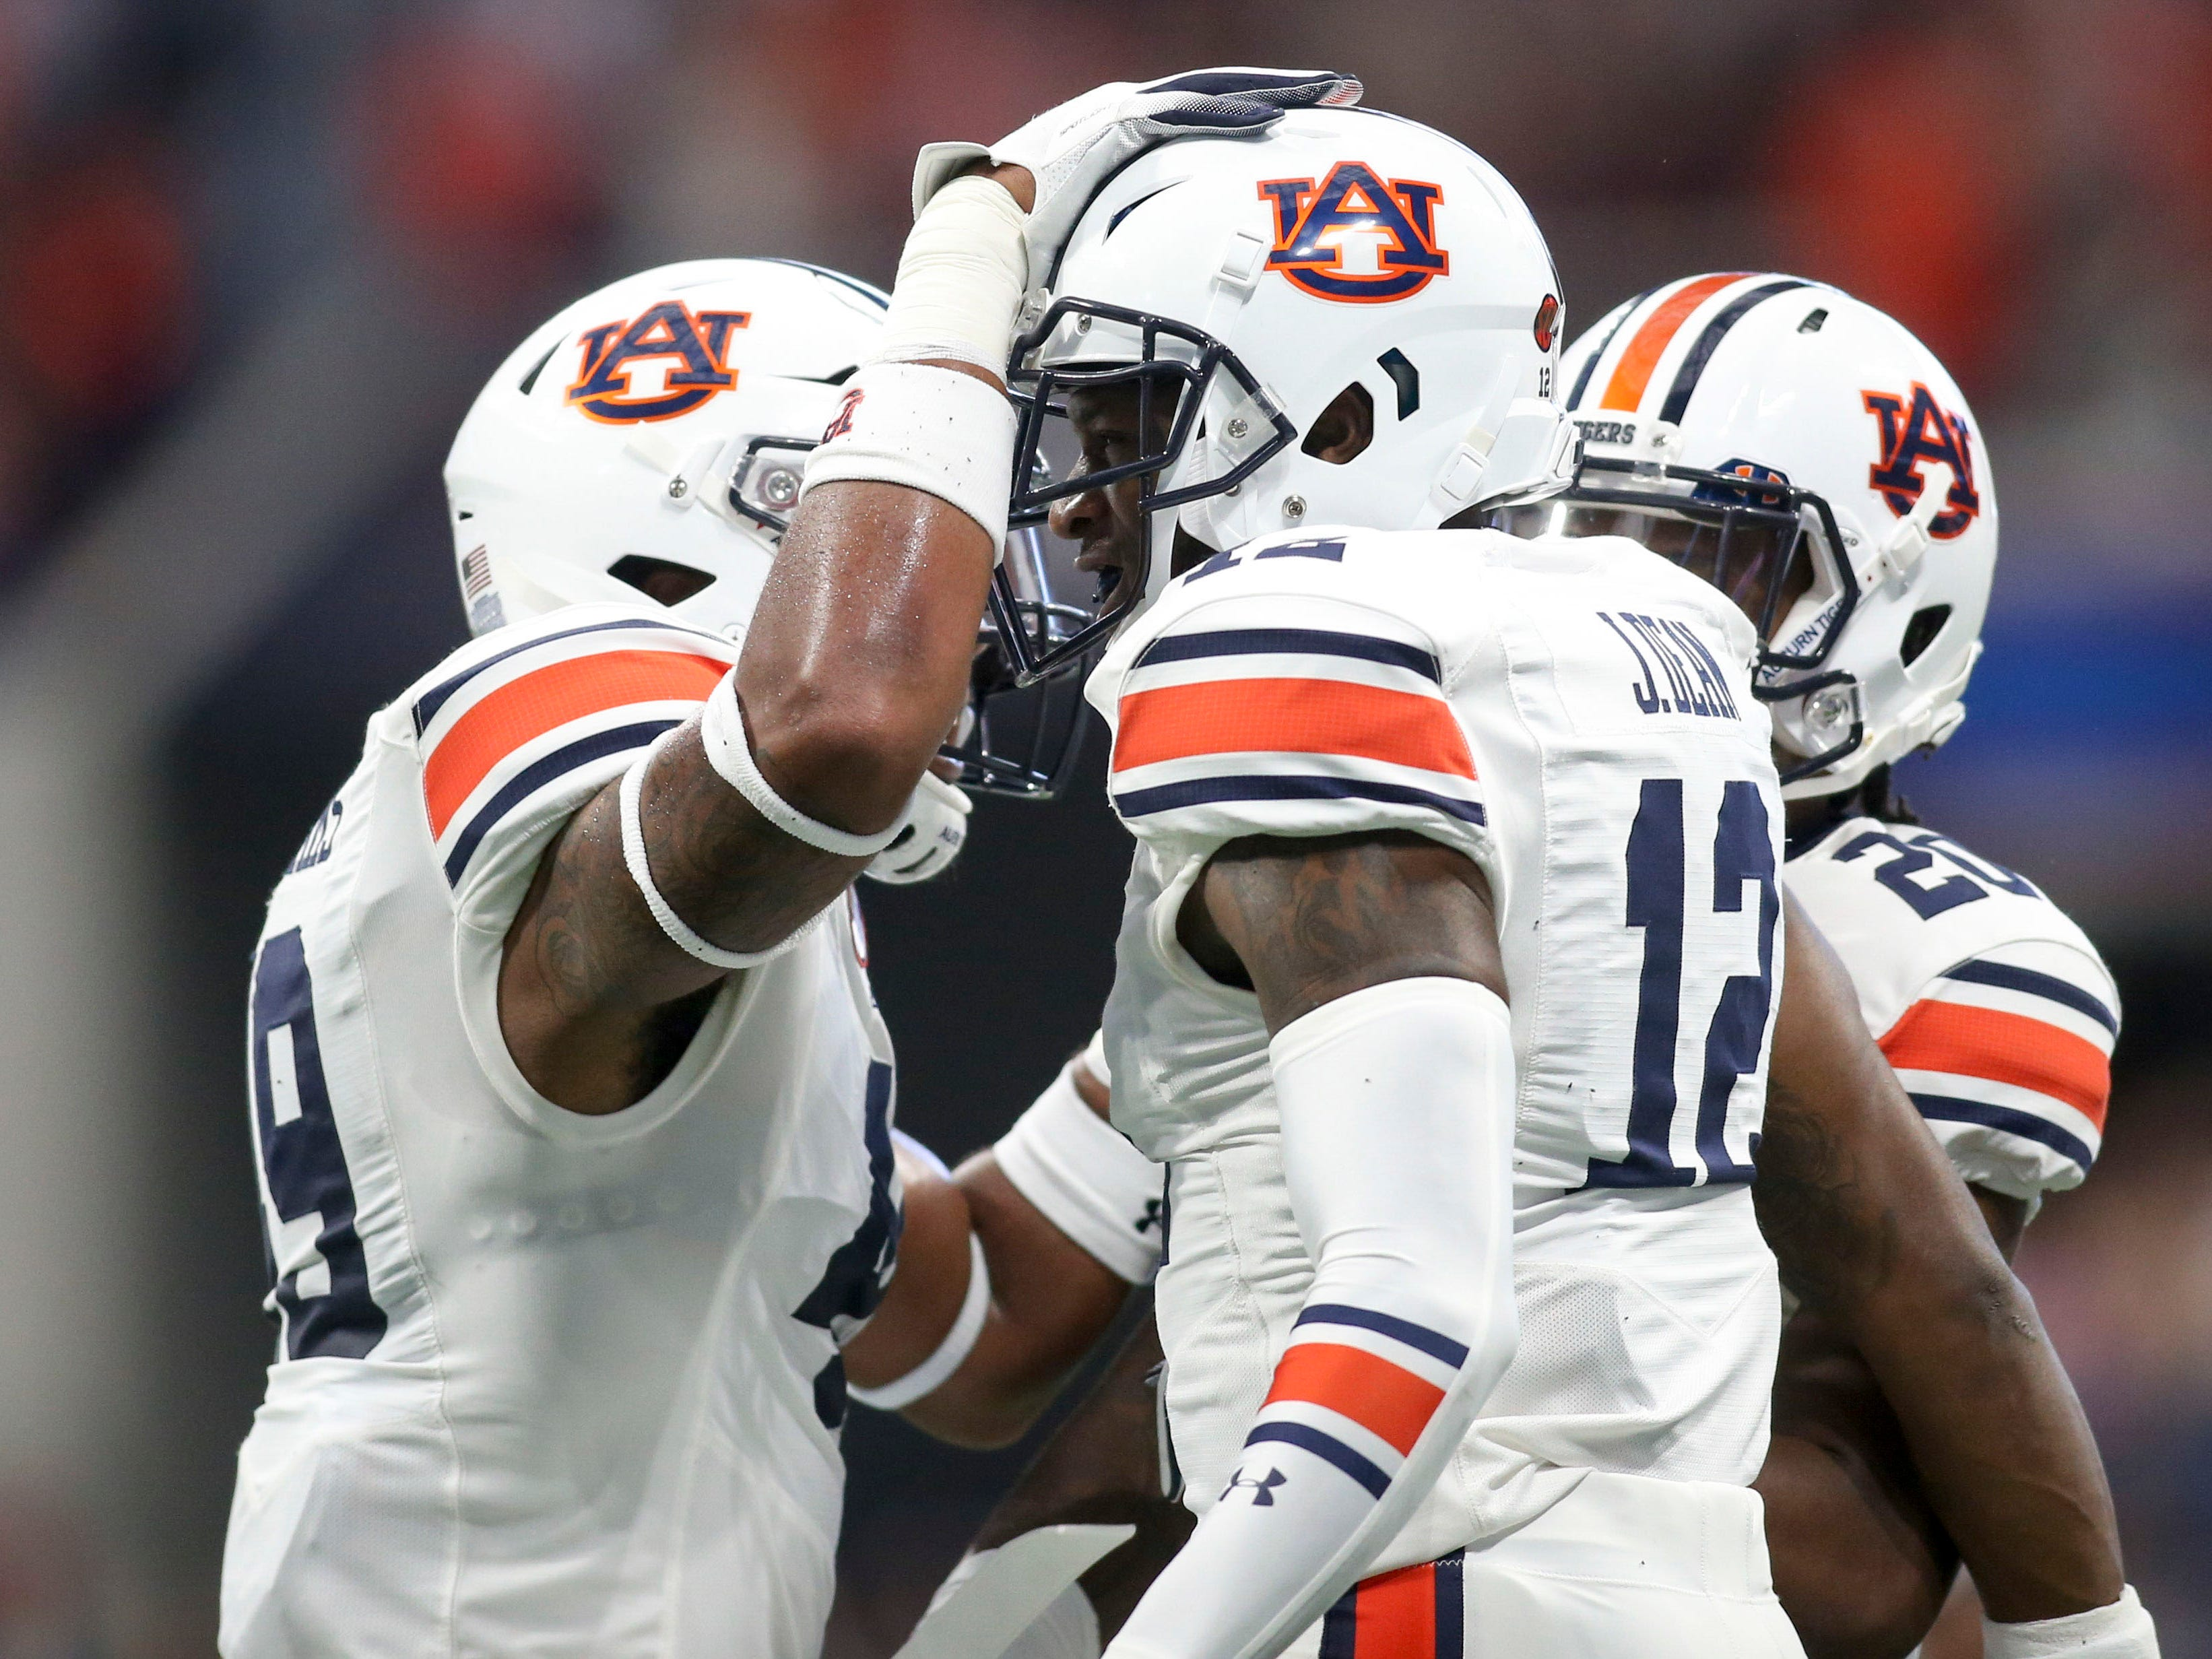 Auburn cornerback Jamel Dean (12) celebrates after an interception with linebacker Darrell Williams (49) and defensive back Jeremiah Dinson (20) against Washington on Sept. 1, 2018, in Atlanta.